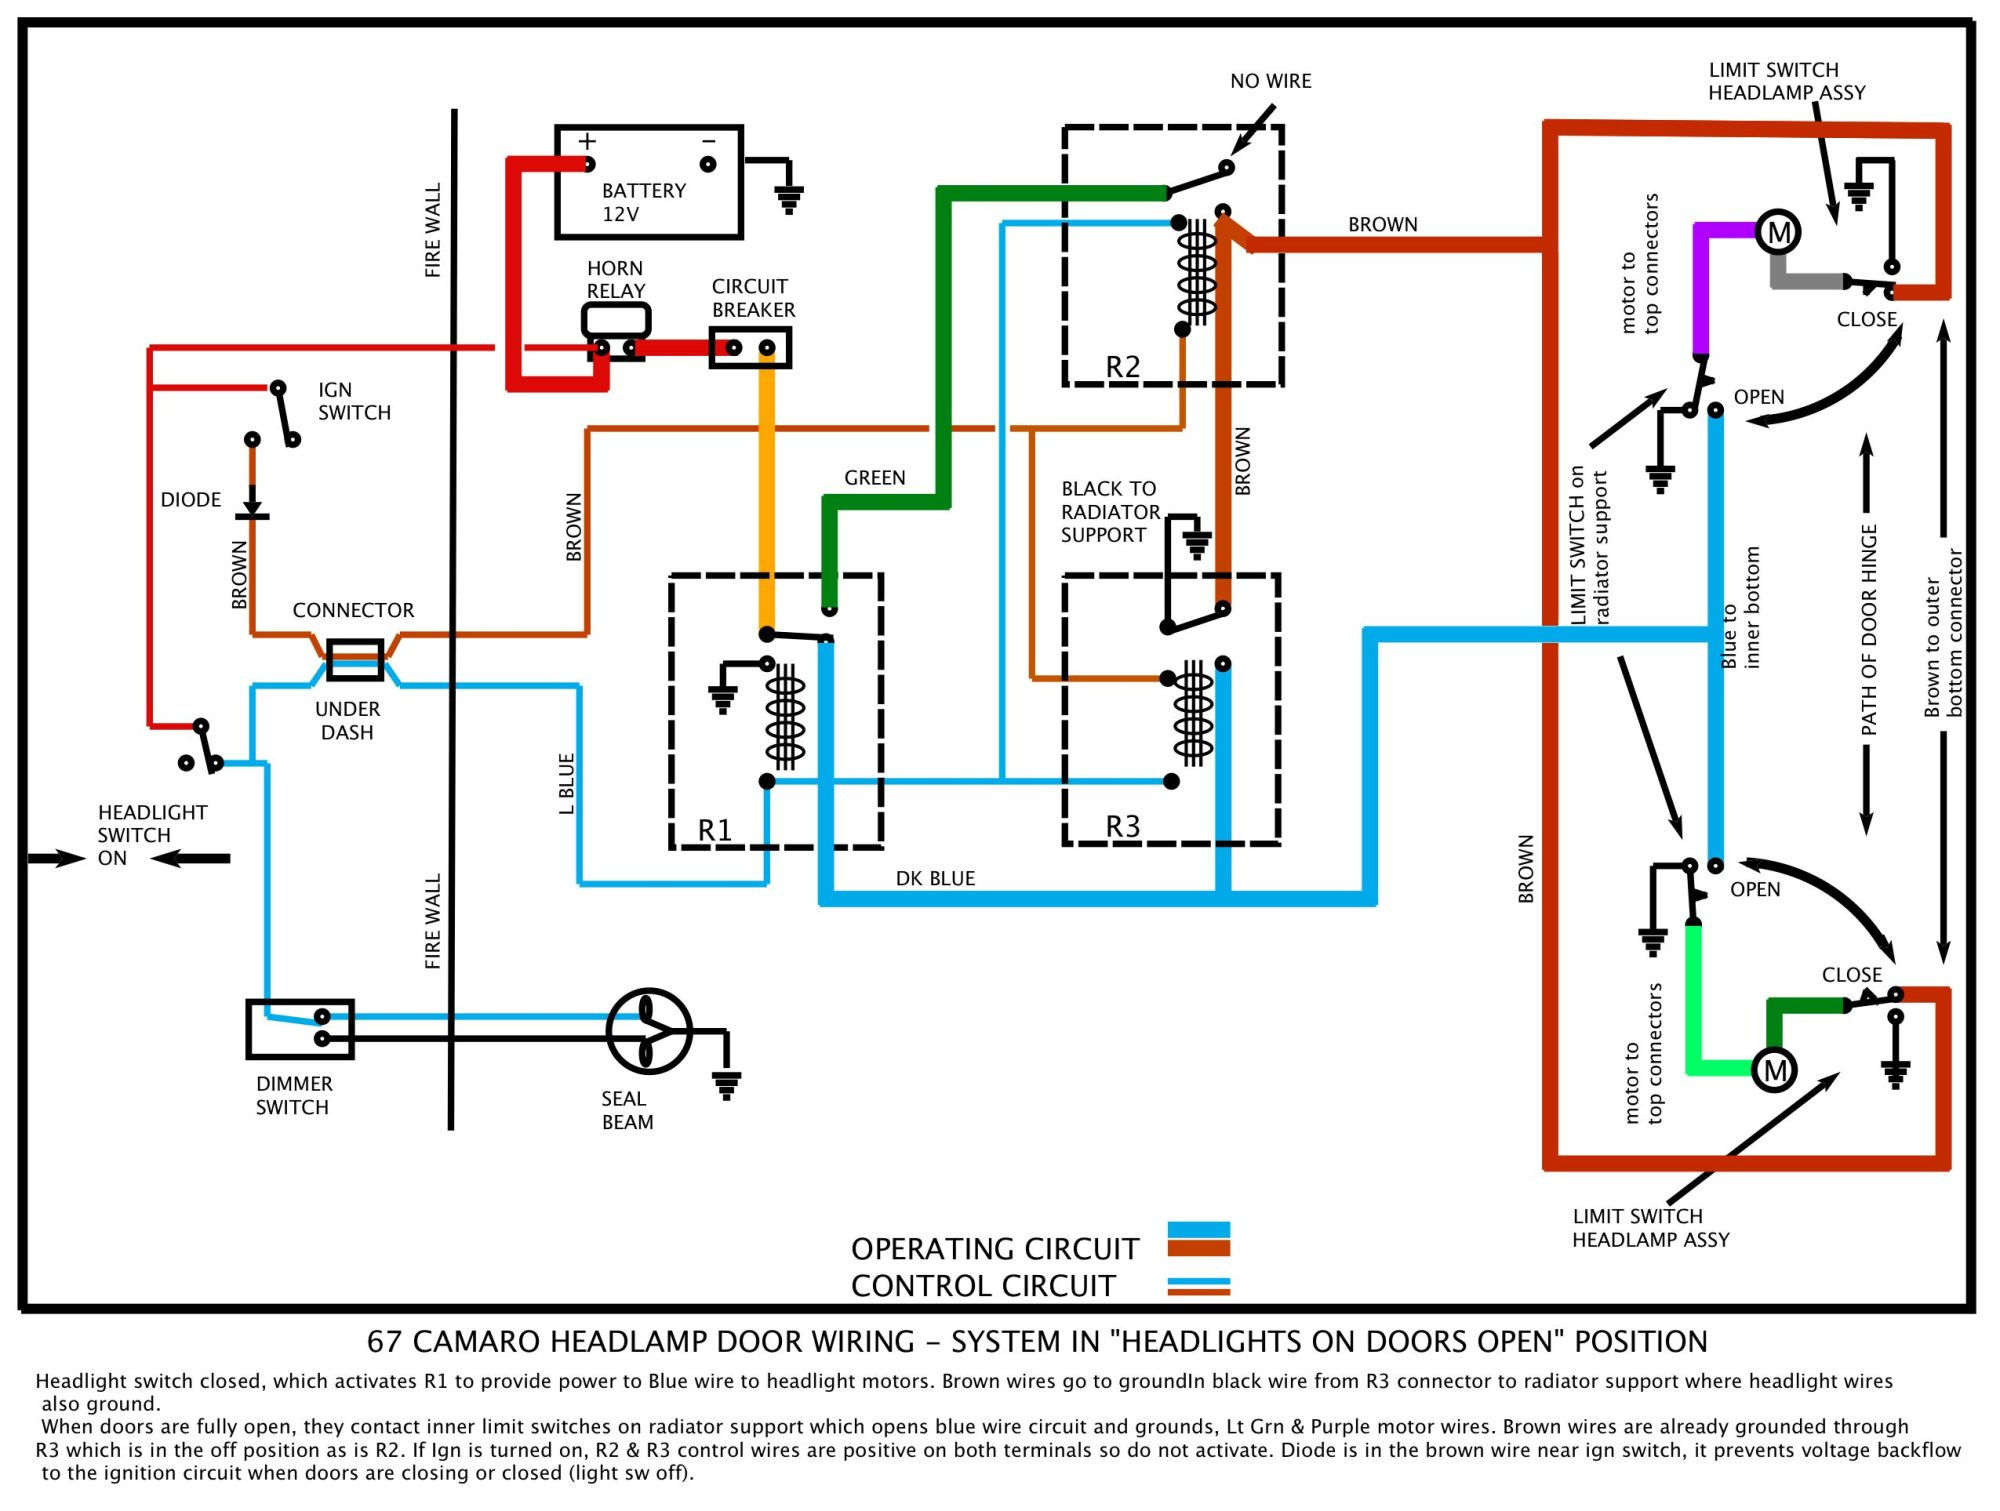 hight resolution of wire diagram 2010 camaro door wiring diagram schematics pontiac alternator wiring diagram 1998 camaro alternator wiring